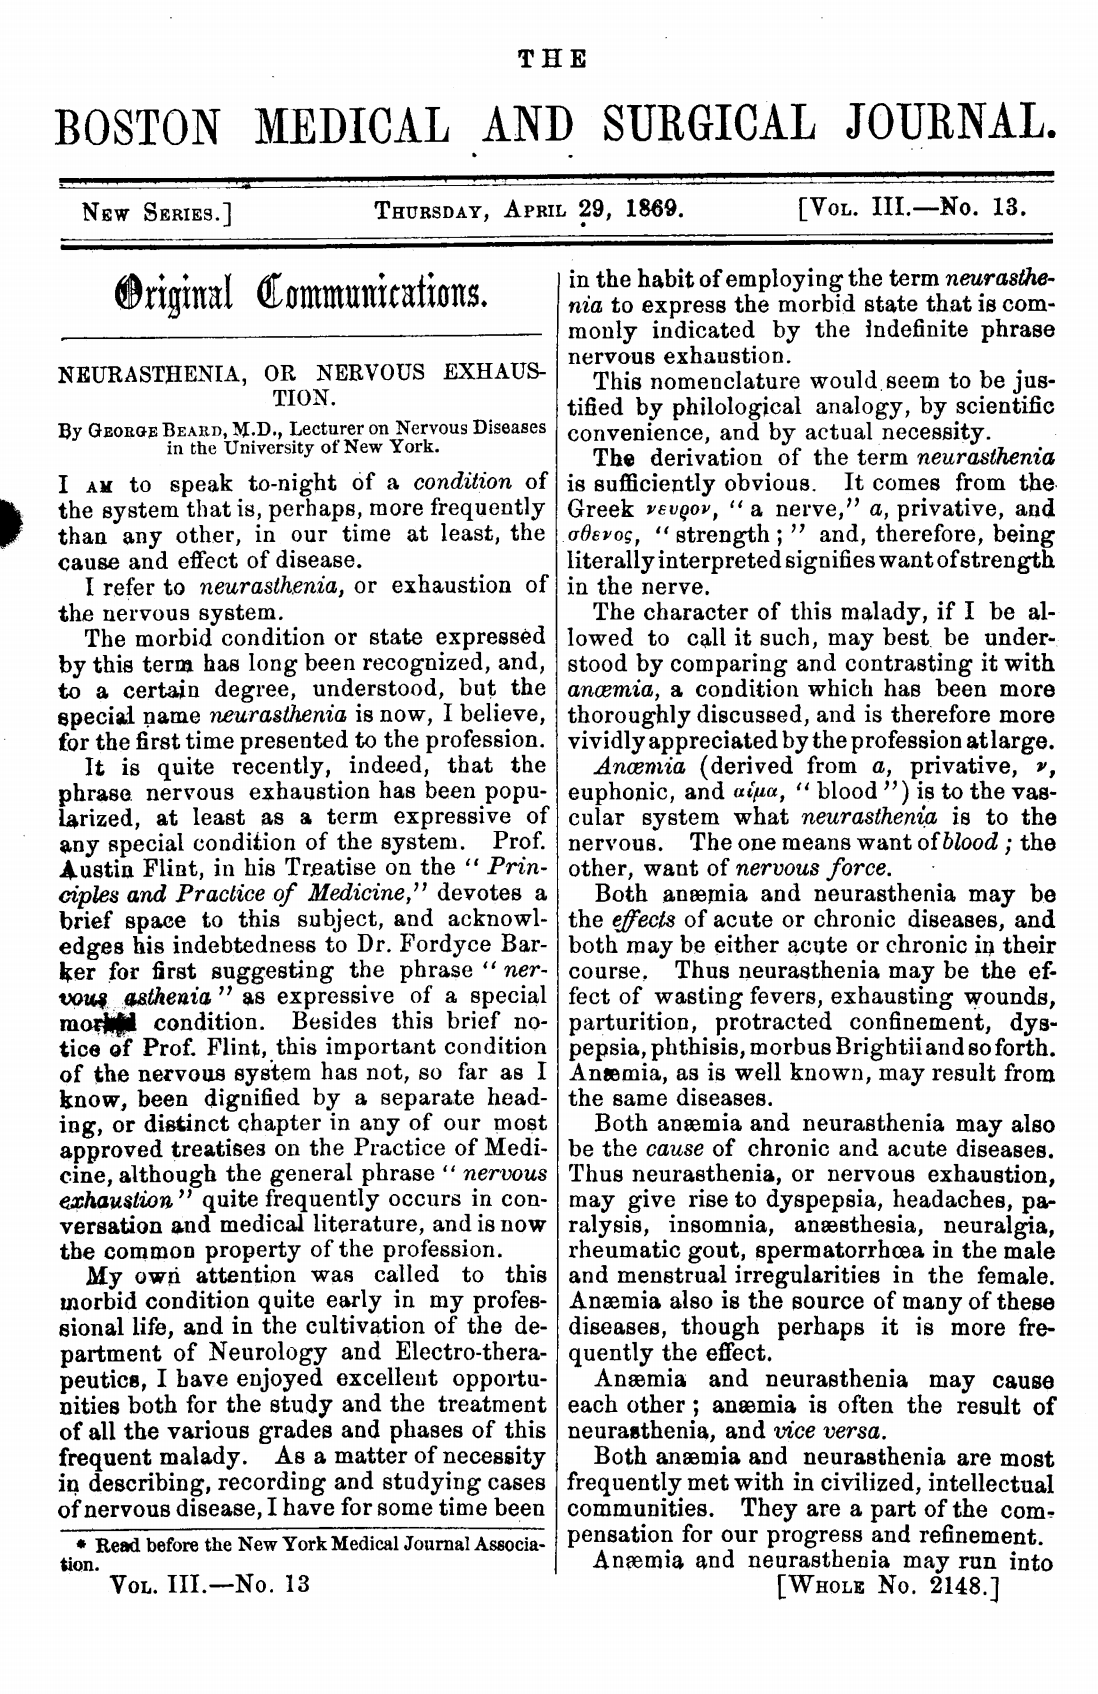 George Beard article on neurasthenia, 1869.